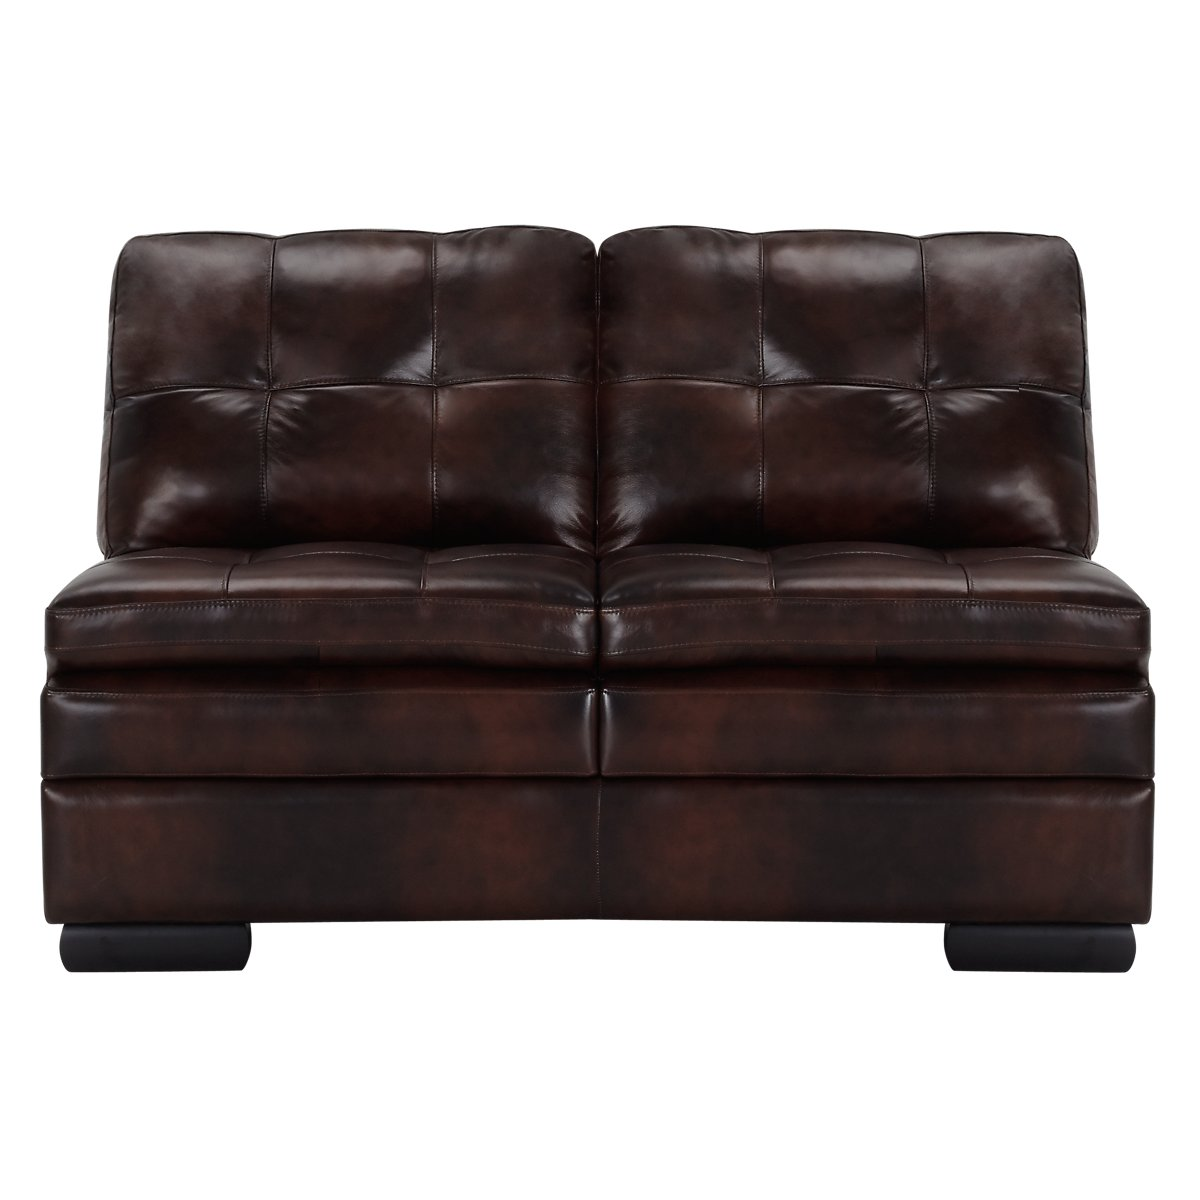 City furniture trevor dark brown leather large right for Brown leather chaise